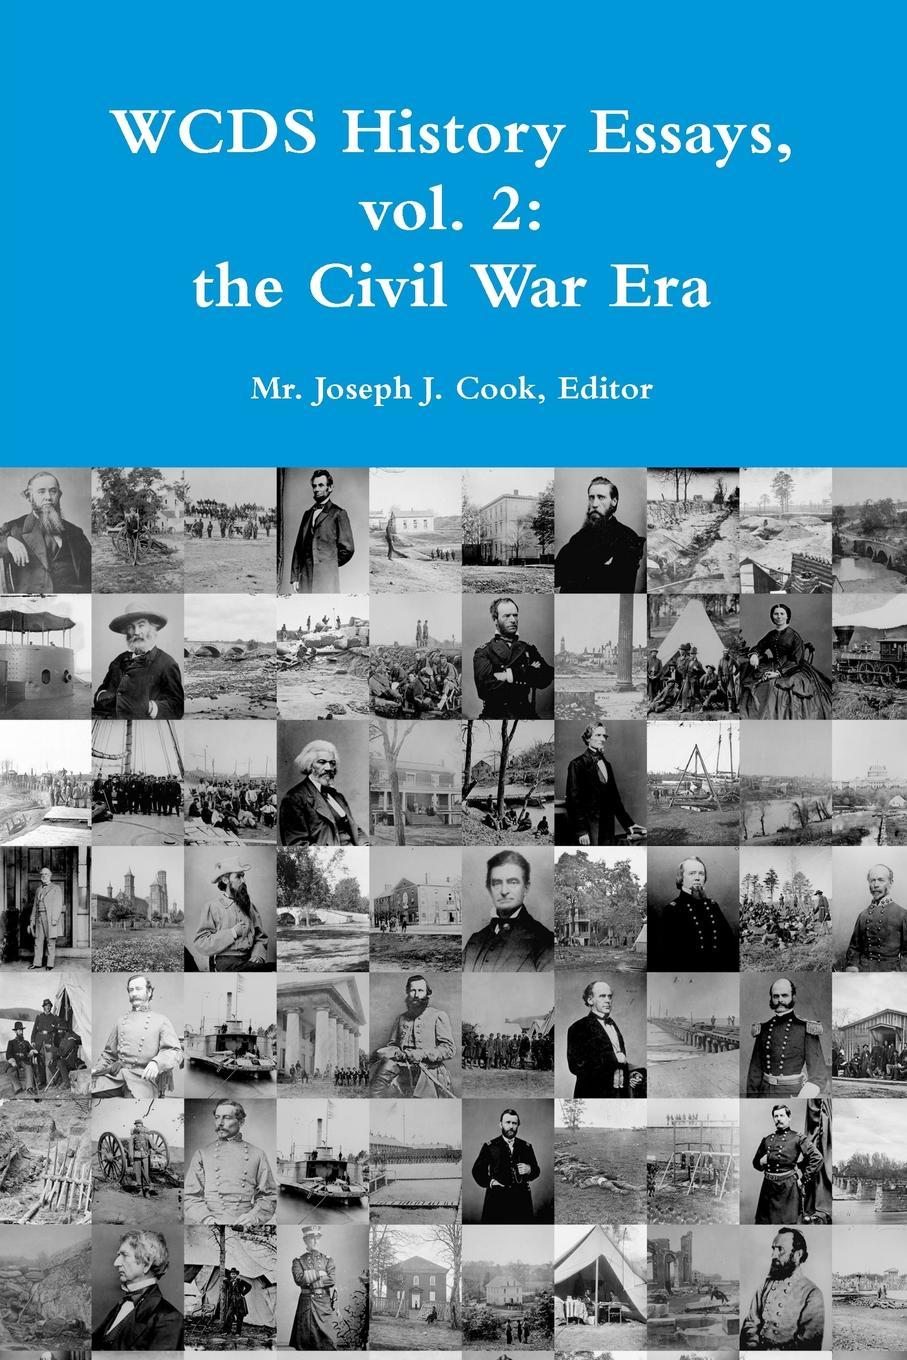 Editor Mr. Joseph J. Cook WCDS History Essays, vol. 2. the Civil War Era